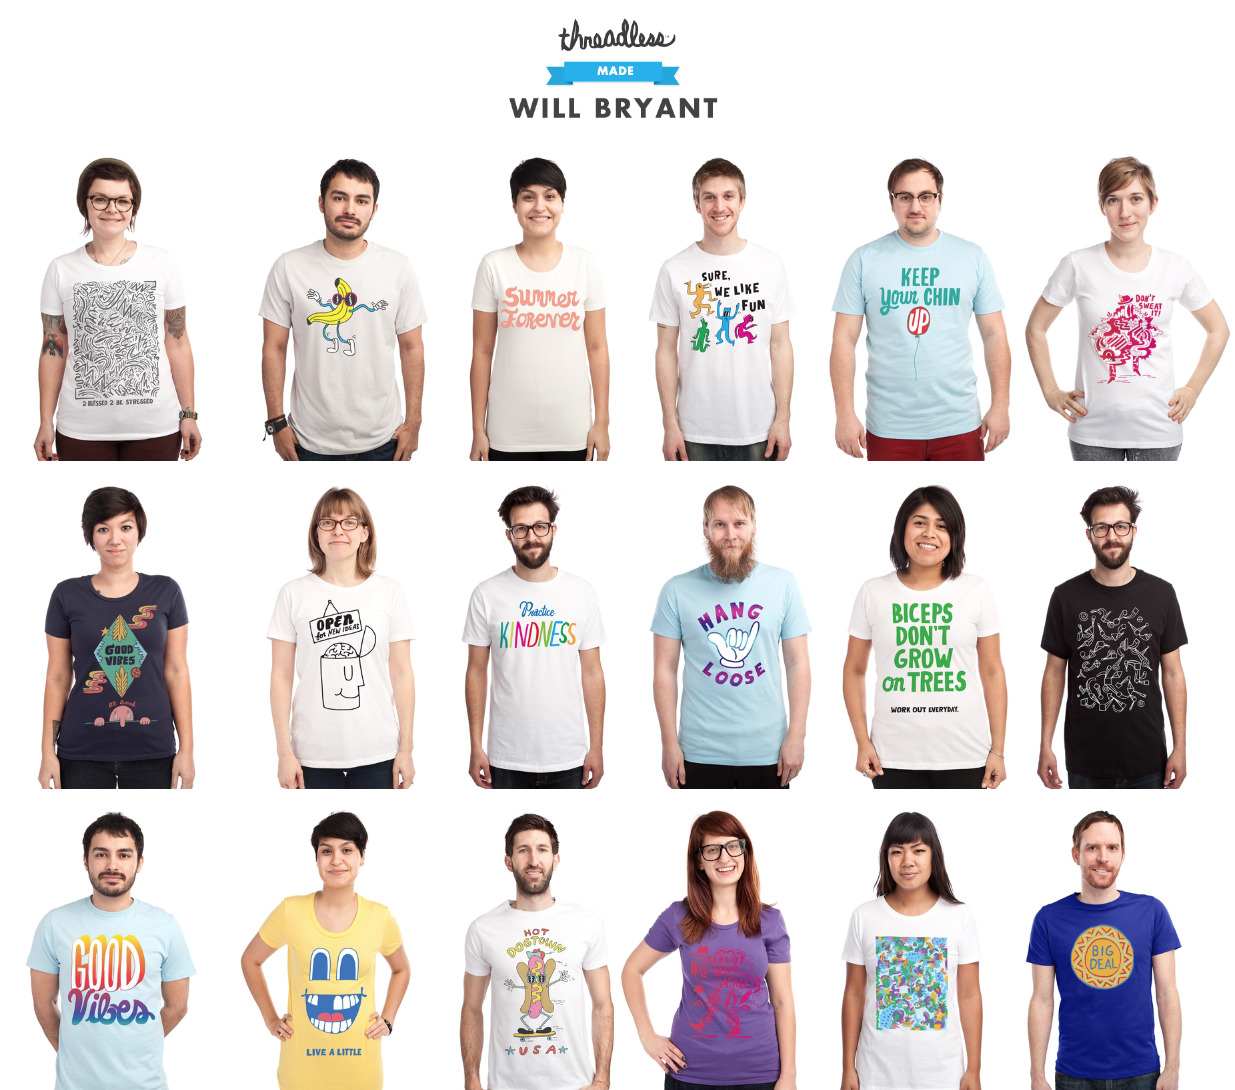 WB x Threadless Made Mega-honored to have my own Threadless collection! Each design is available in mens & womens and also some other futuristic products like baby onesies and hardshell iPhone sleeping bags.